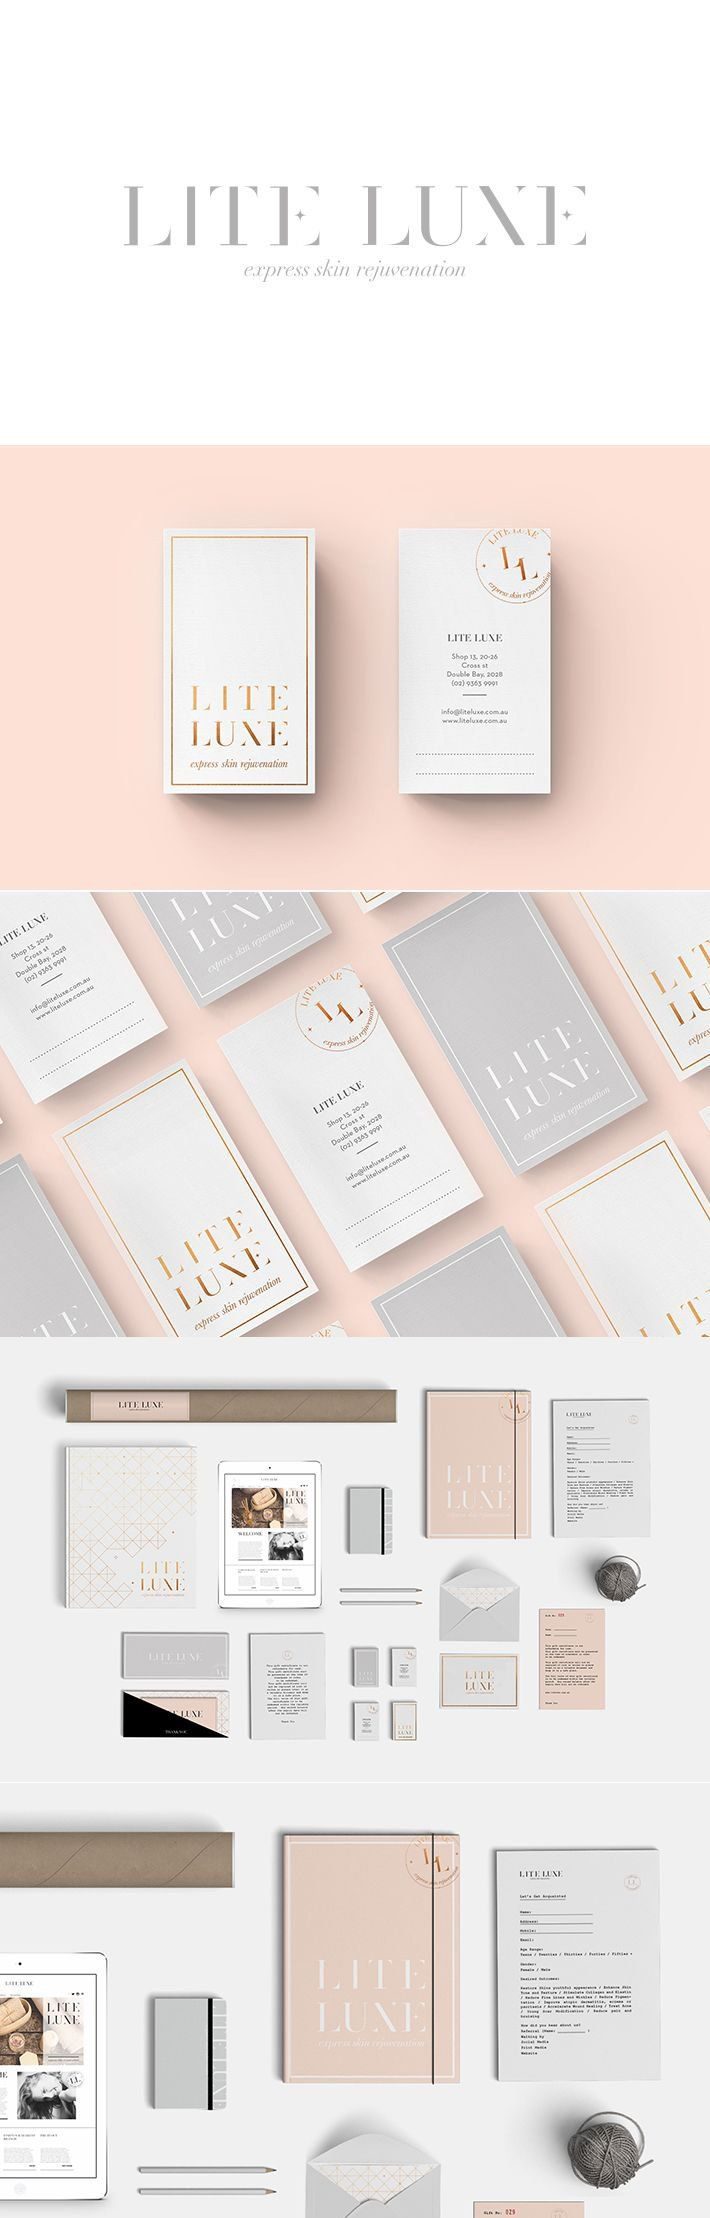 Smack Bang Designs for women's skin rejuvenation service 'Lite Luxe'.